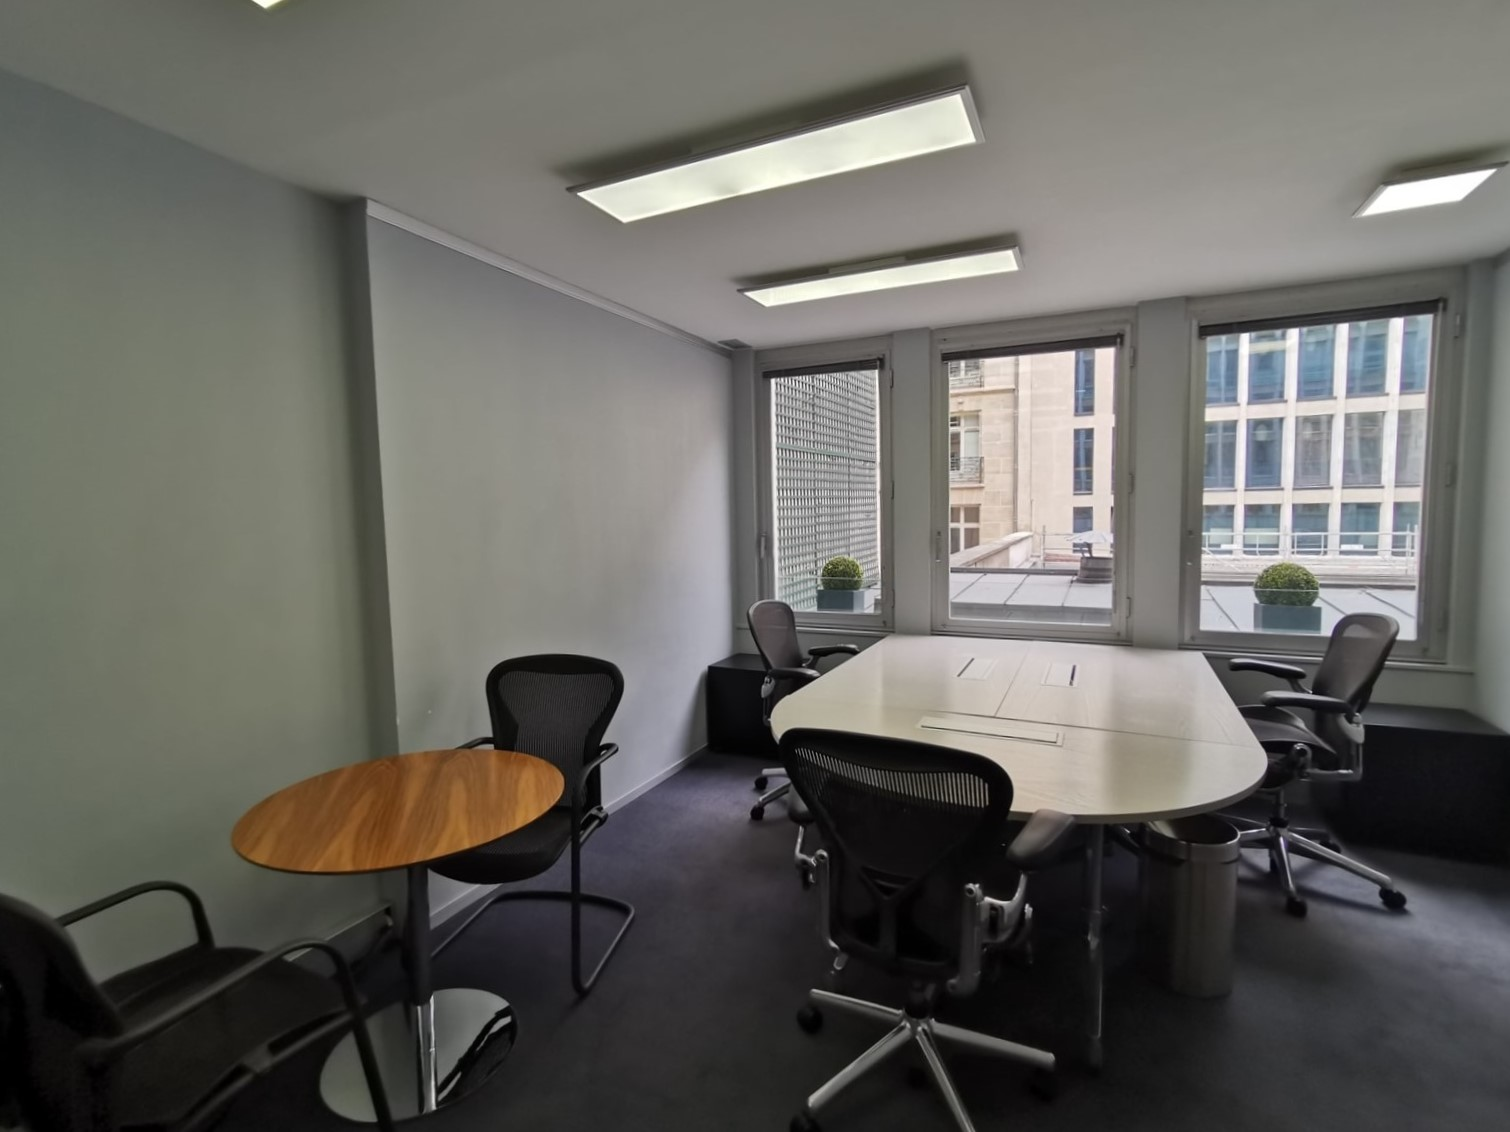 Office space with sitting area